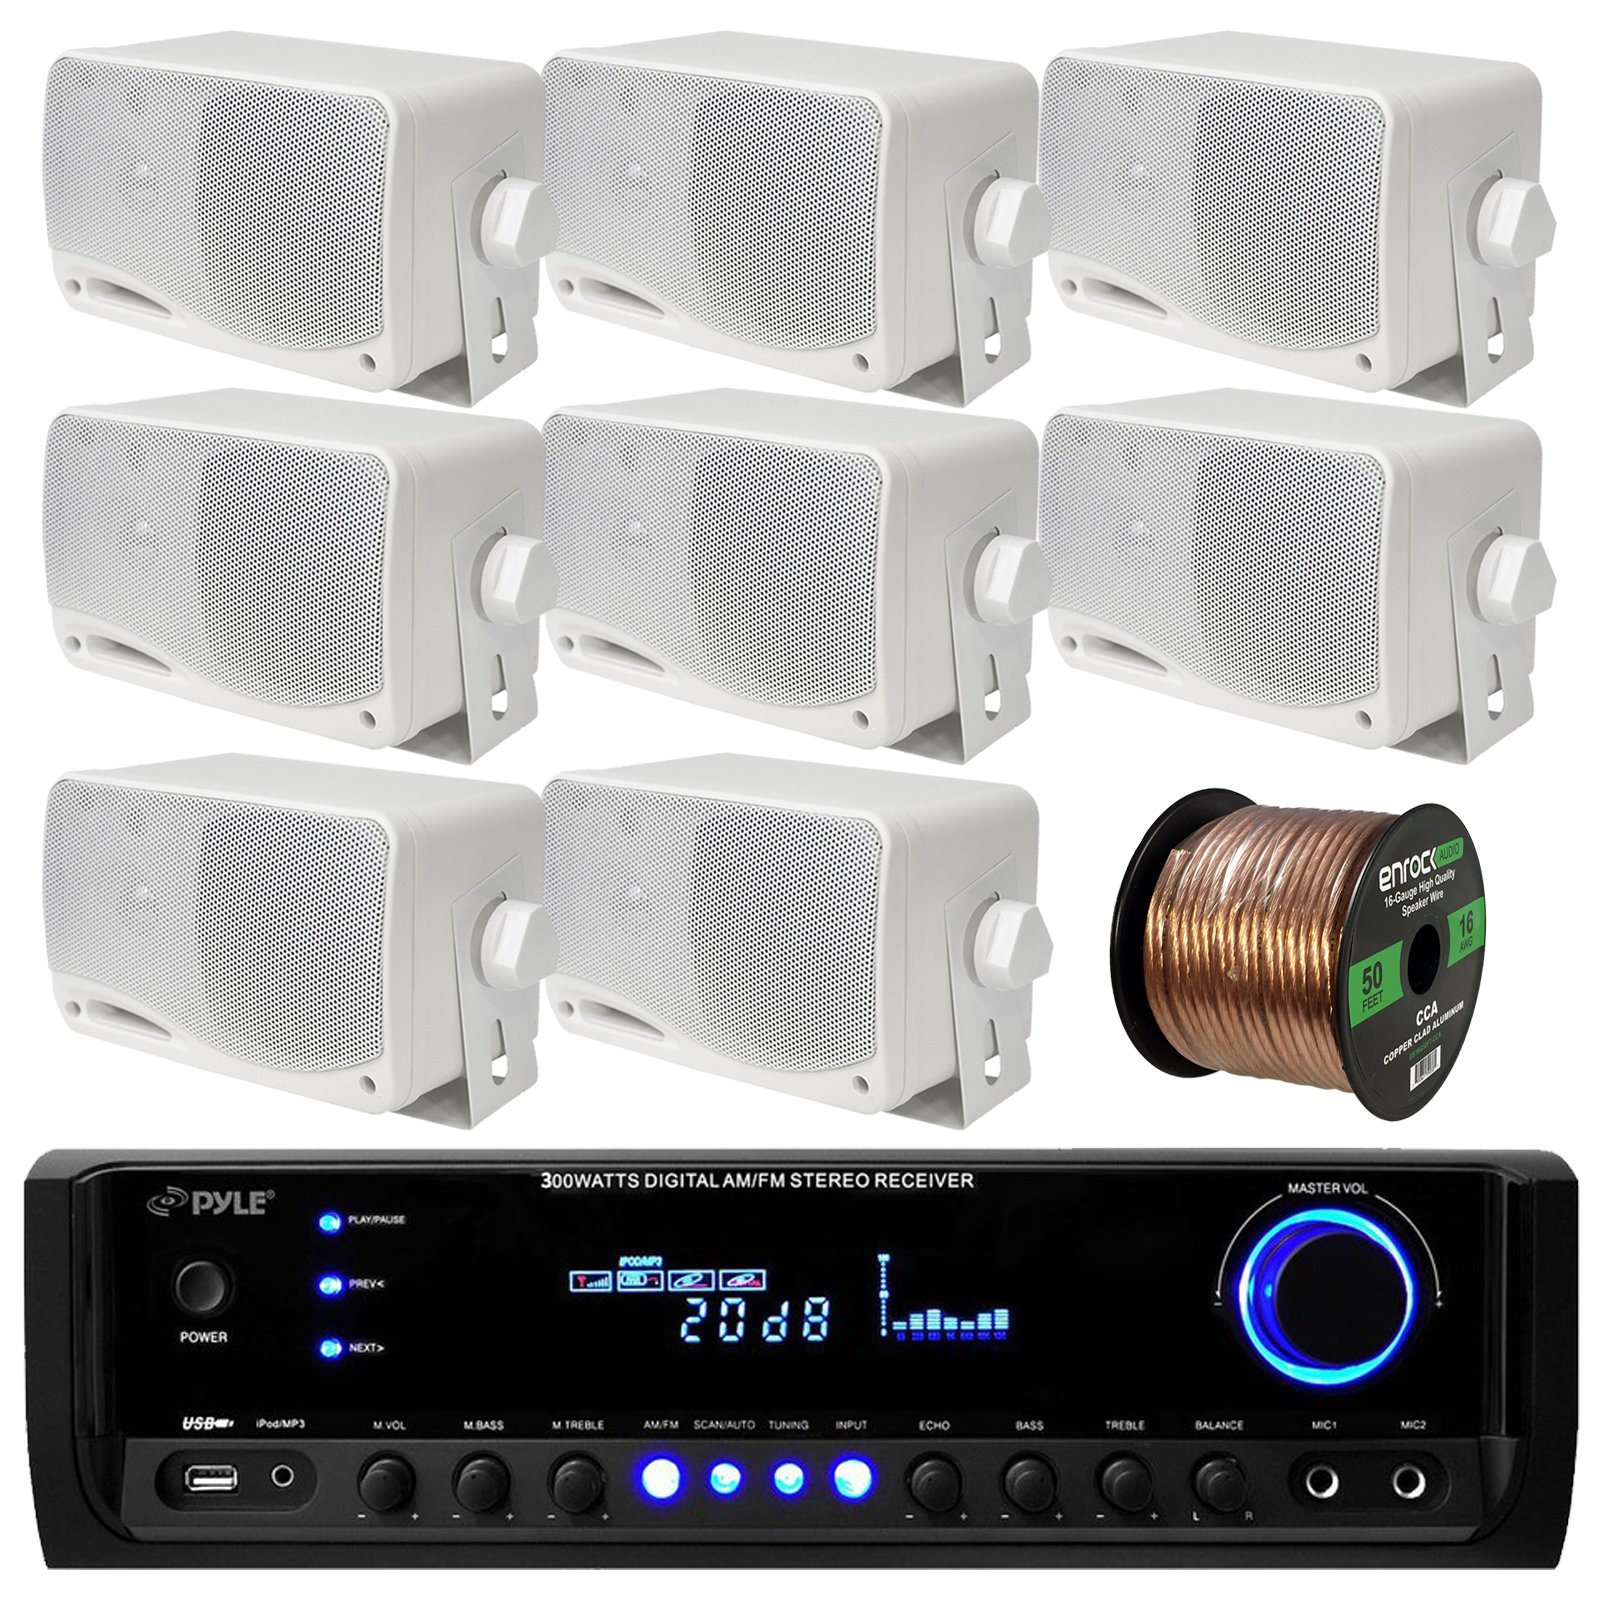 Pyle PT390BTU Bluetooth Digital Home Theater 300-Watt Stereo Receiver Bundle Combo With 8x White 3'' Inch 3-Way Wall Mount Home Audio Speakers + Enrock 50 Ft 16g Speaker Wire